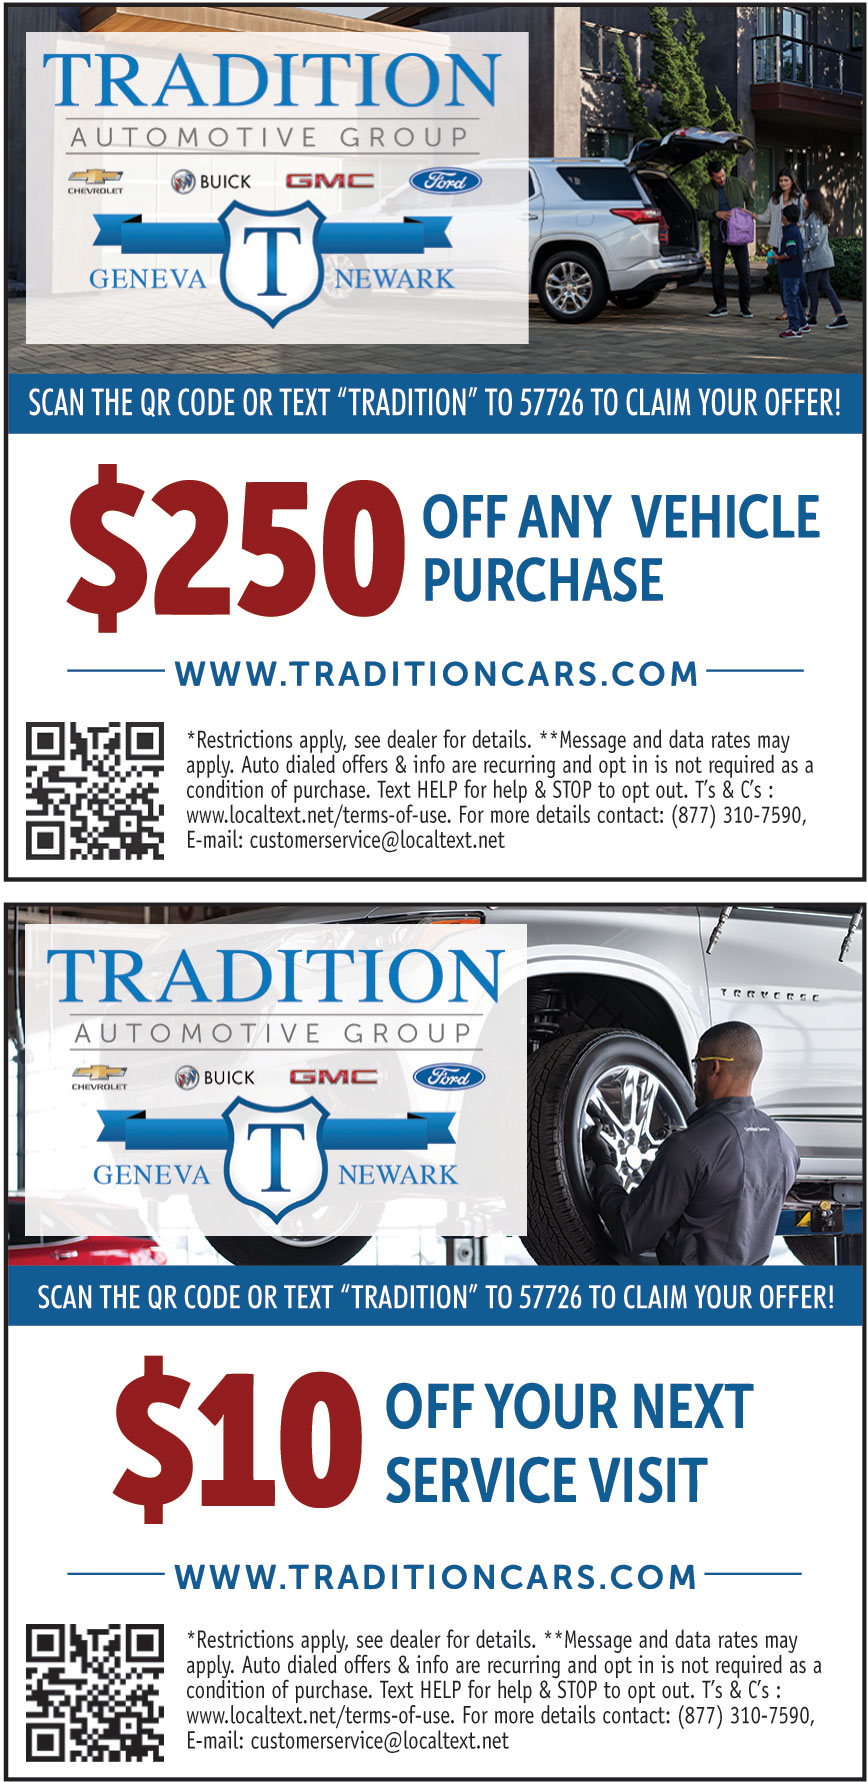 TRADITION AUTOMOTIVE